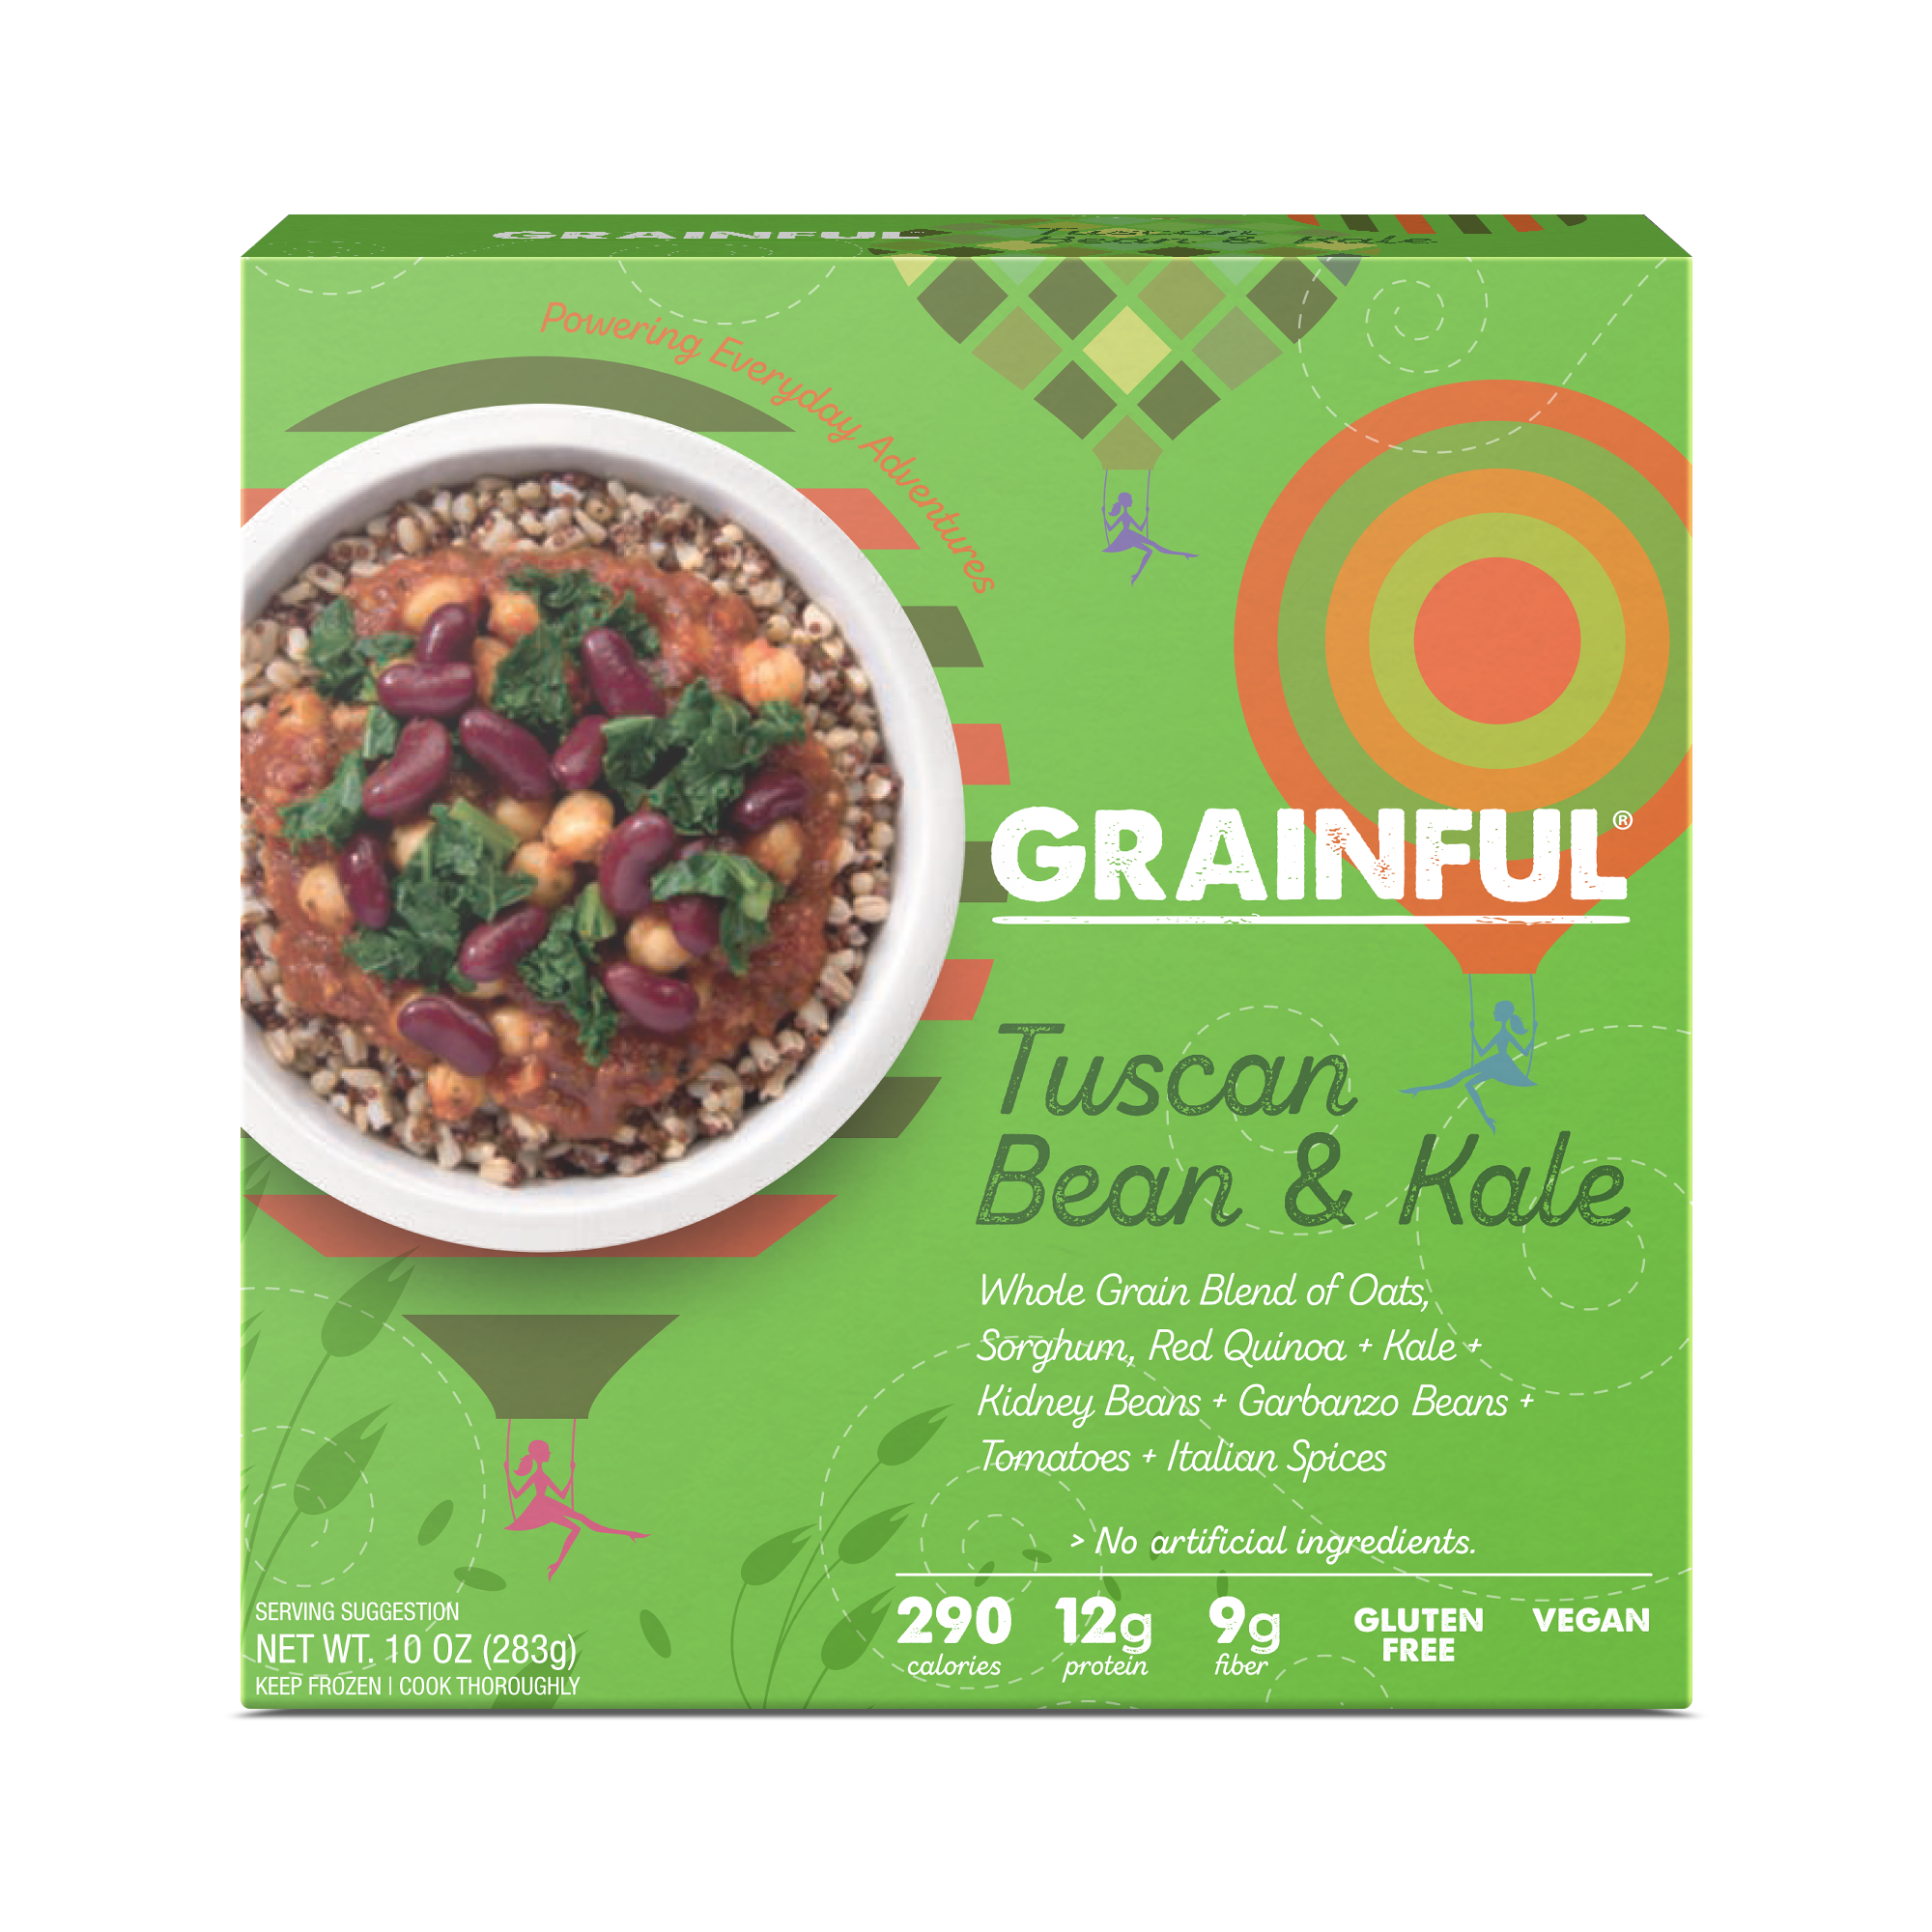 Grainful Amazon 3D Mockup_Tuscan Bean and Kale.png